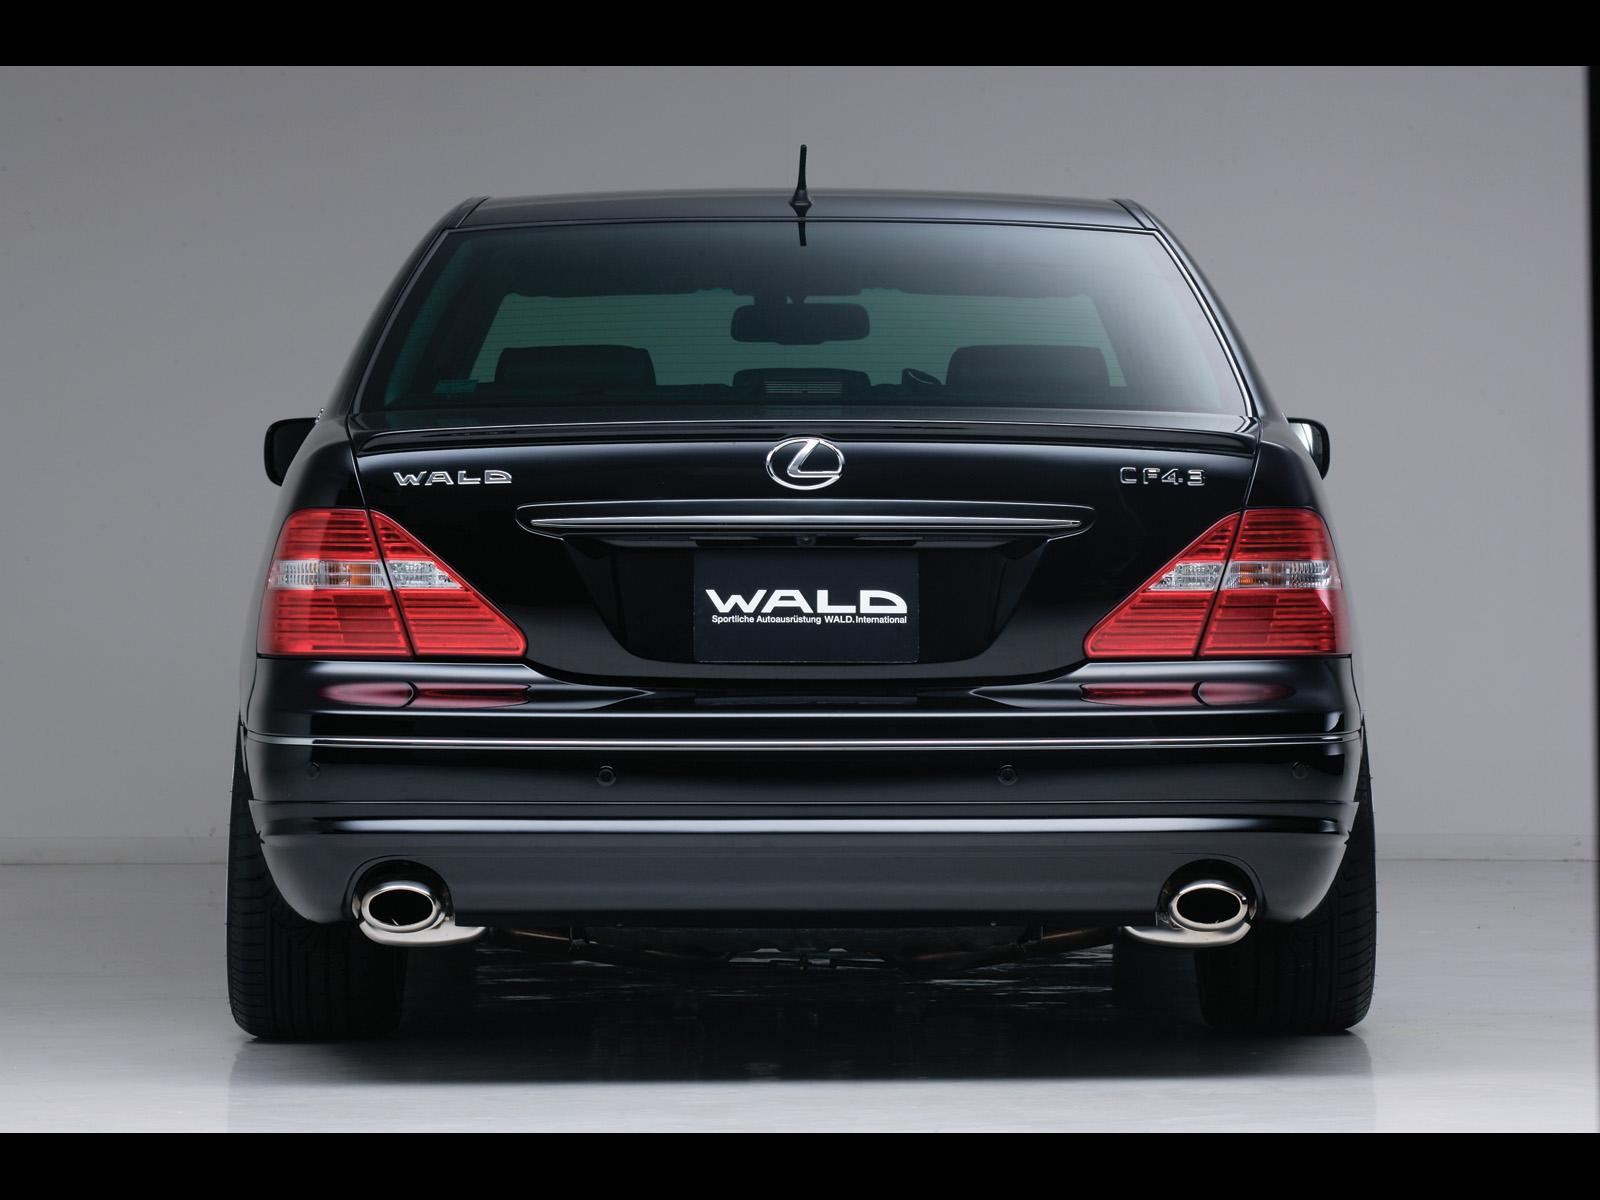 Wald Lexus CF43 photo 26241